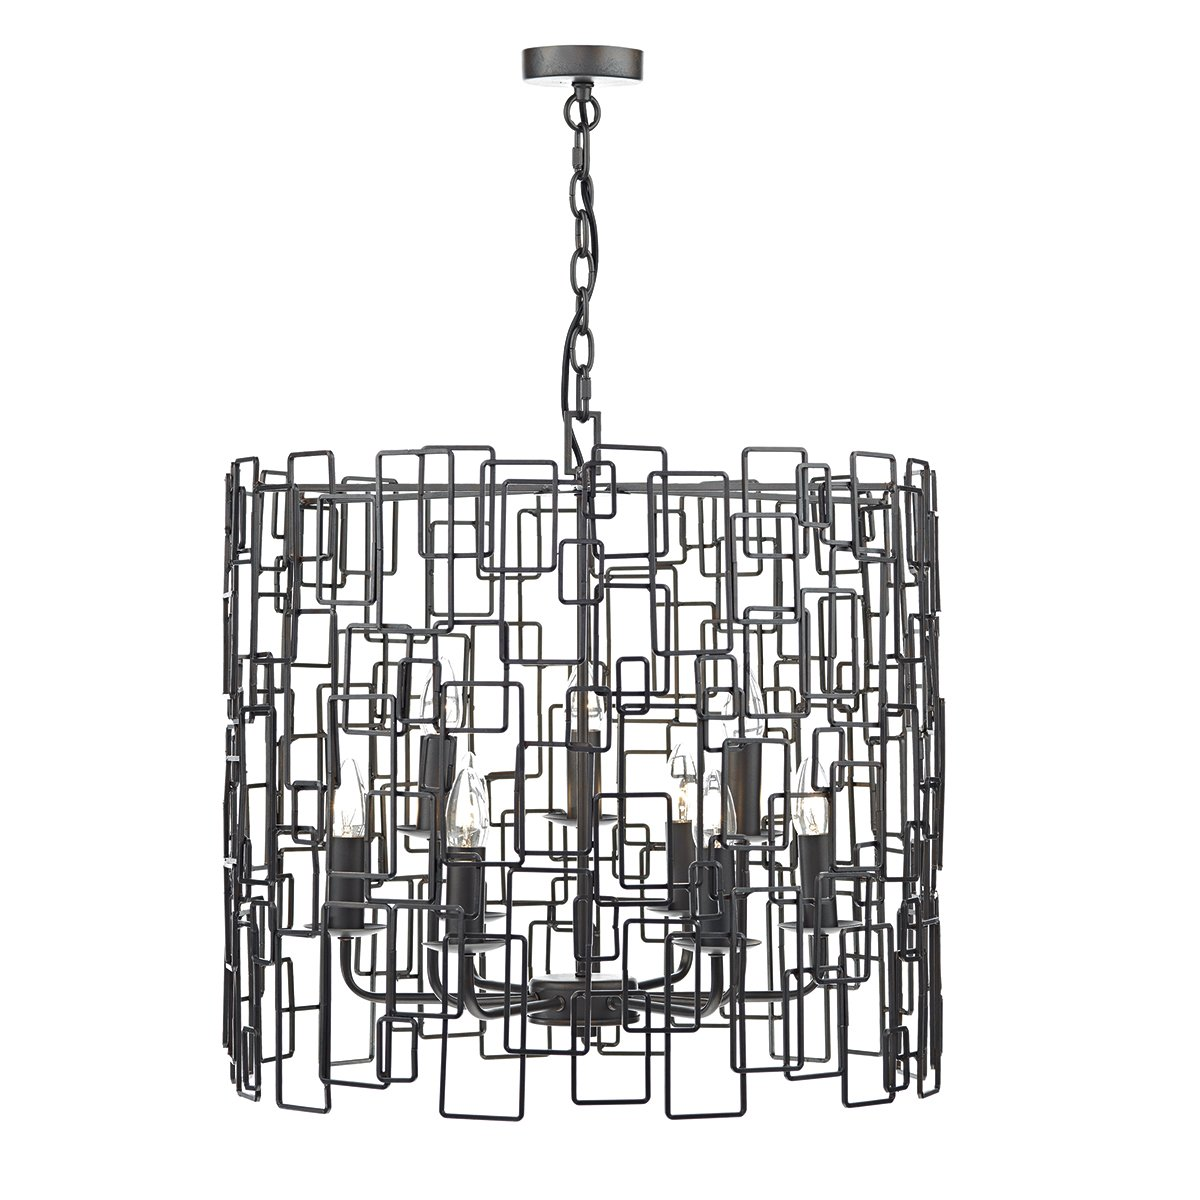 Dar OXO1322 Oxo 9 Light 2 Tier Pendant in Matt Black with Hints of Copper